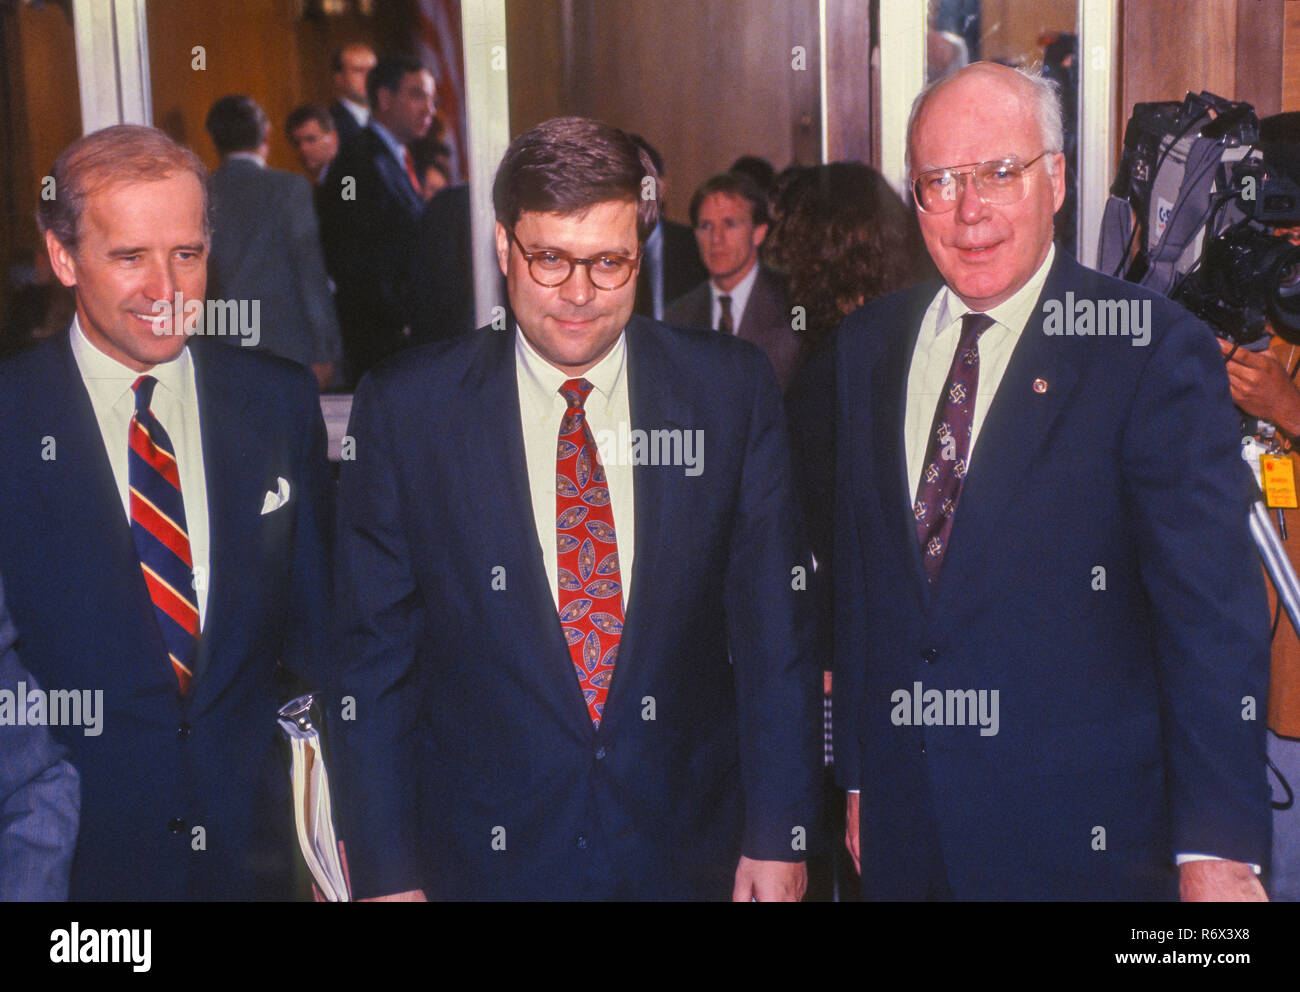 WASHINGTON, DC, USA - NOVEMBER 12, 1991:  William Barr, nominee for U.S. Attorney General, center, Senate Judiciary Committee confirmation hearing. Left Senator Joseph Biden. Right, Senator Patrick Leahy. Stock Photo